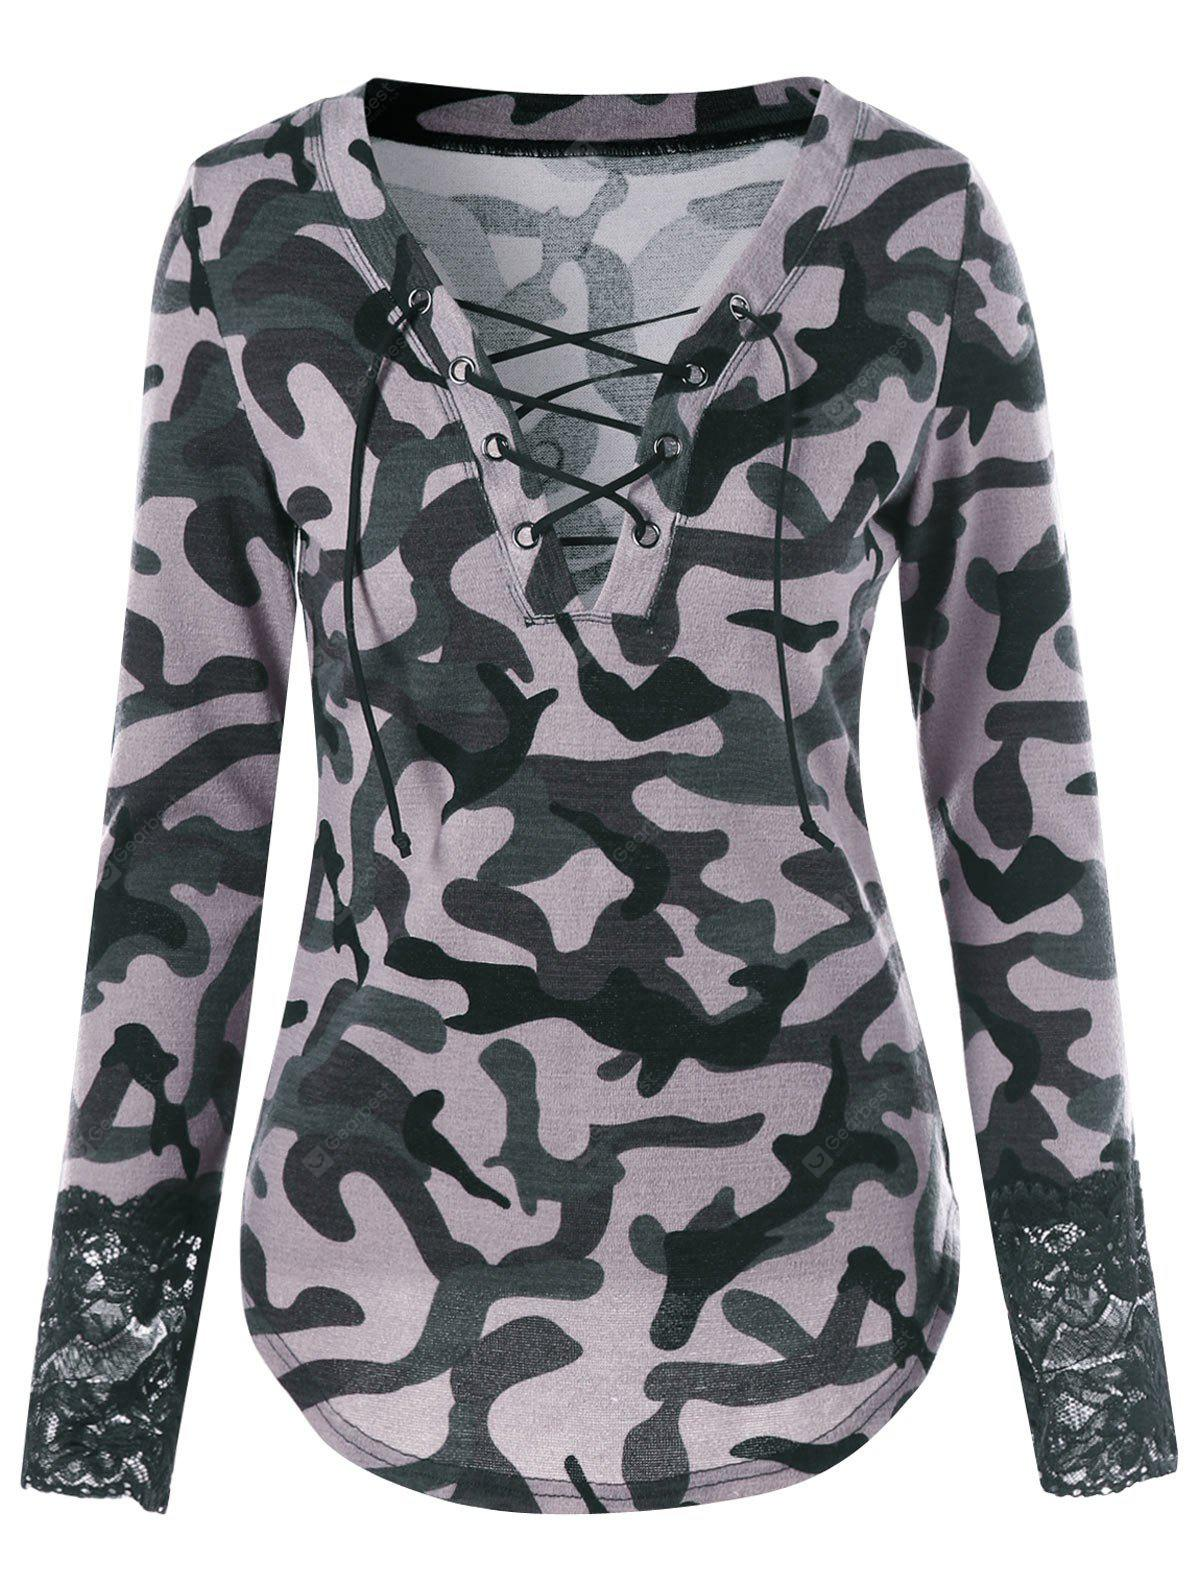 Lace Up Camouflage Lace Panel T-shirt